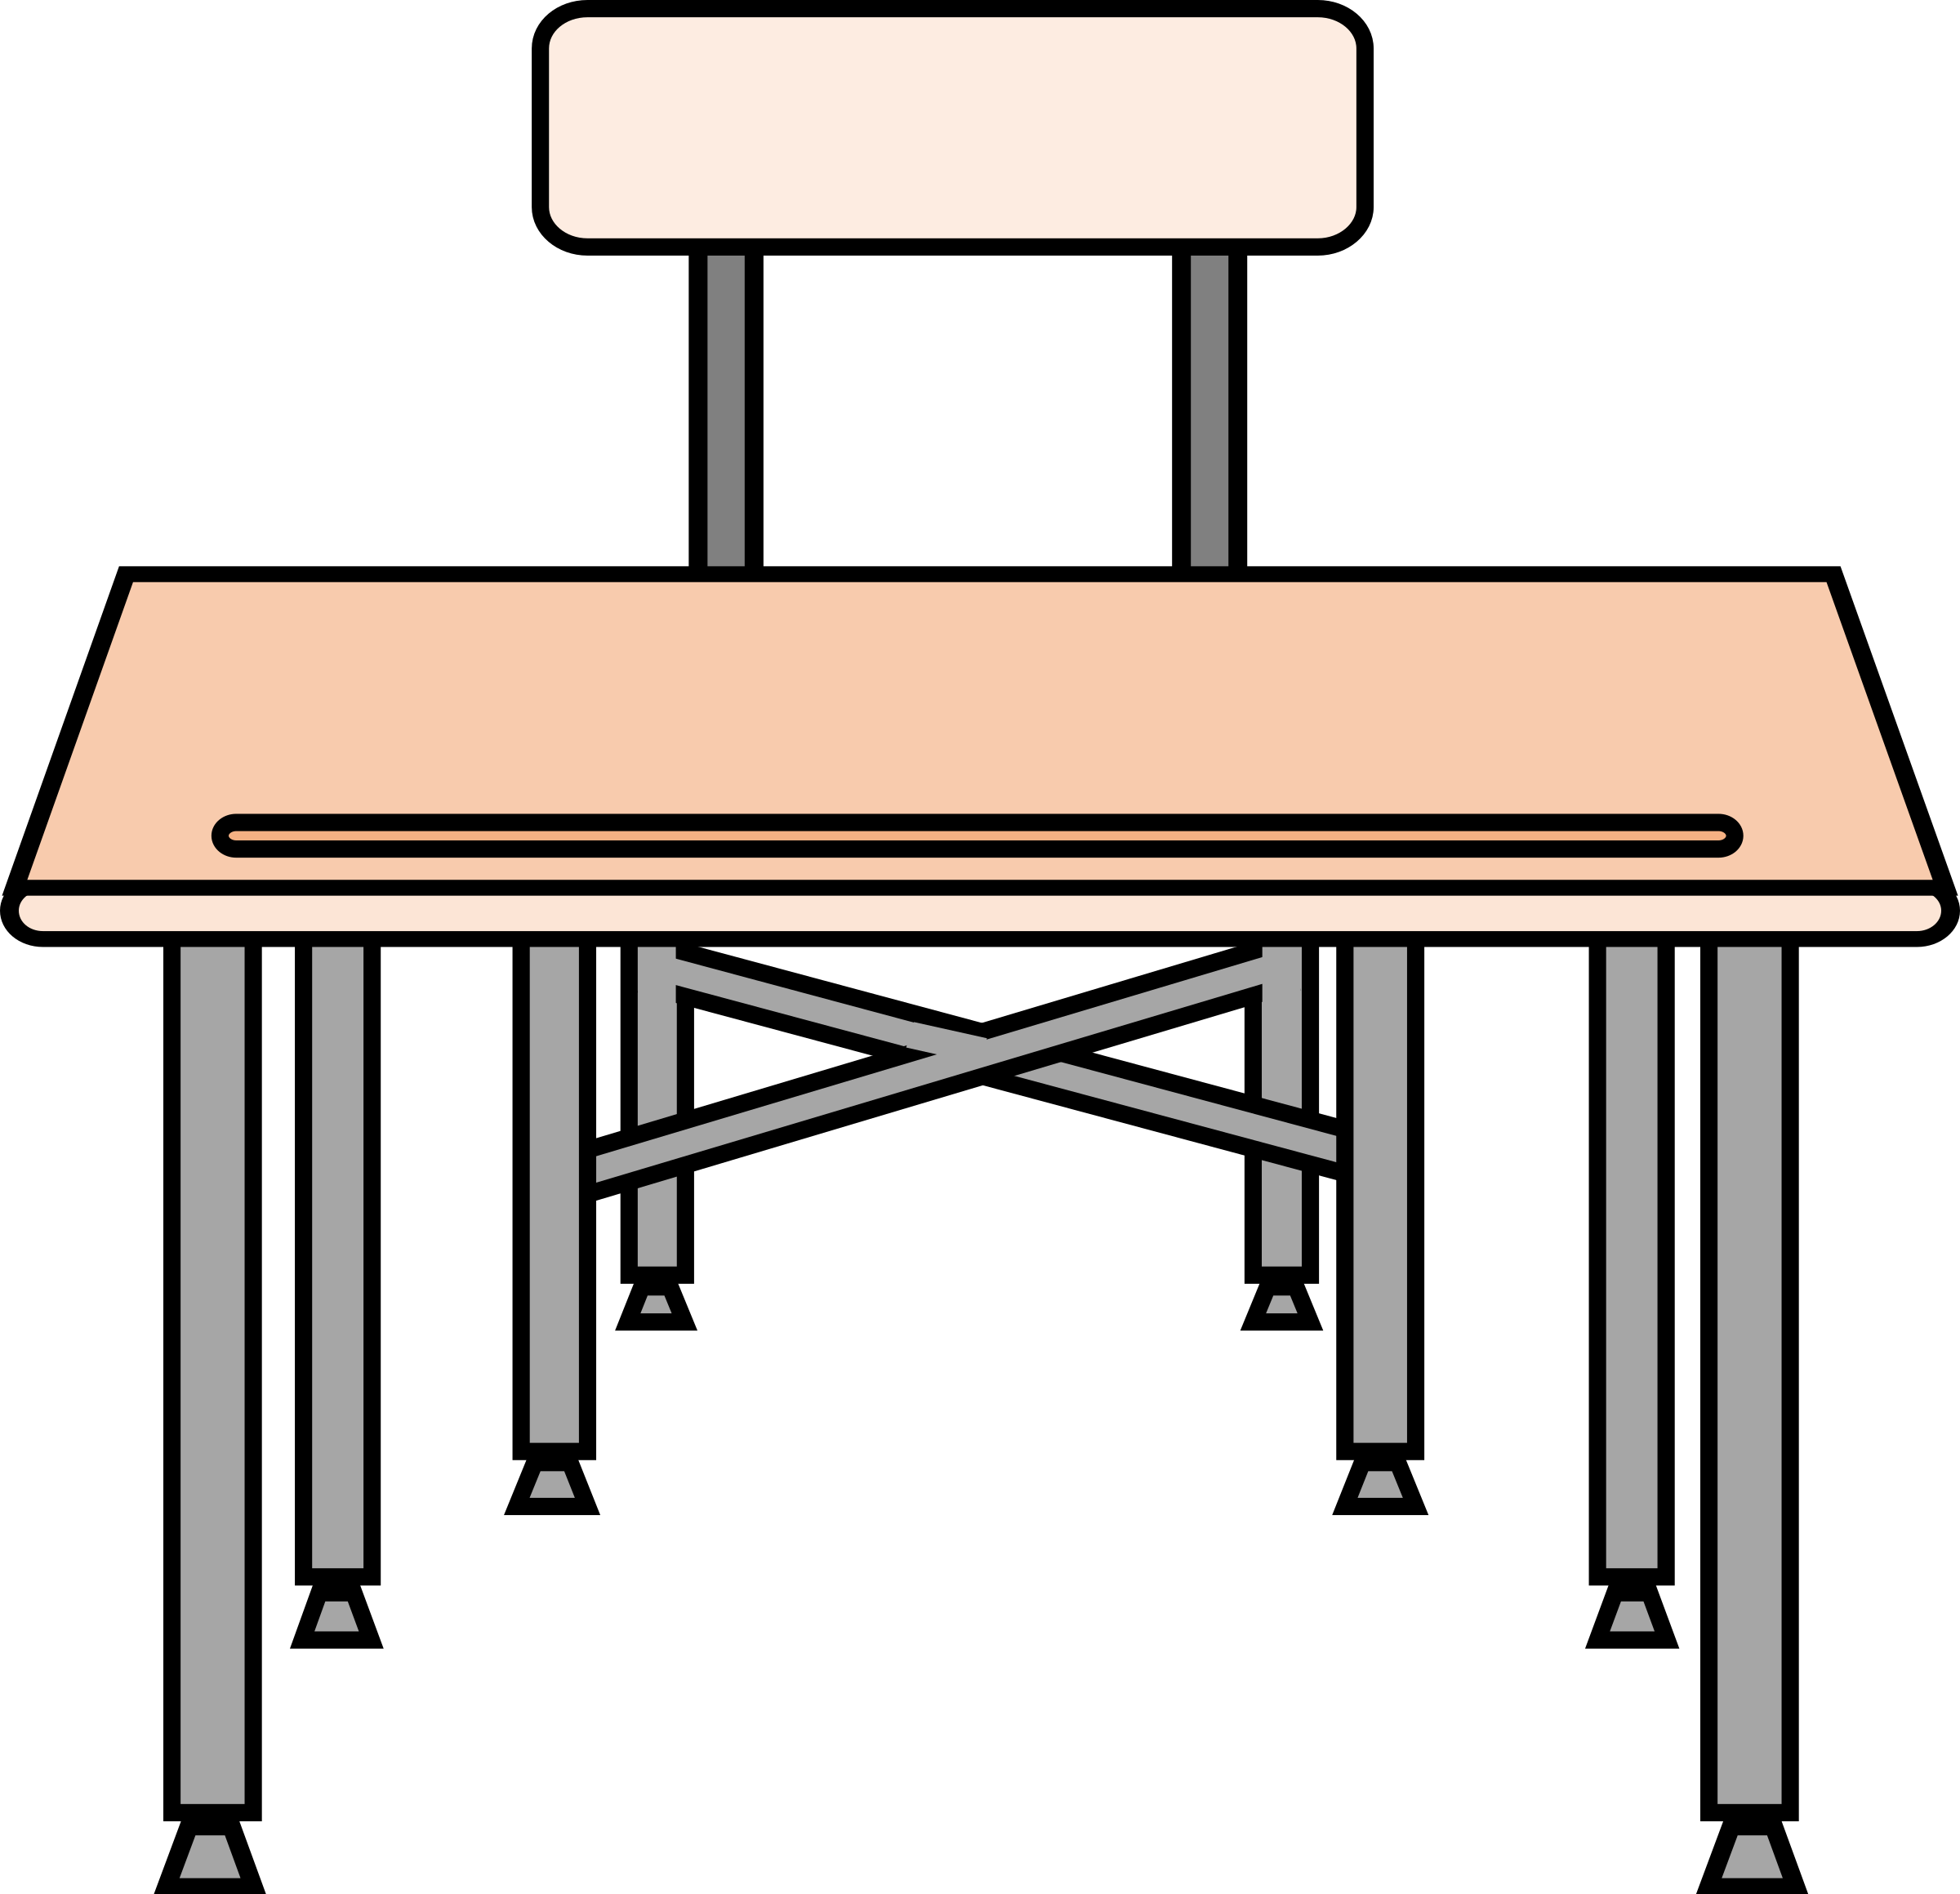 school table clipart free download best school table clipart on